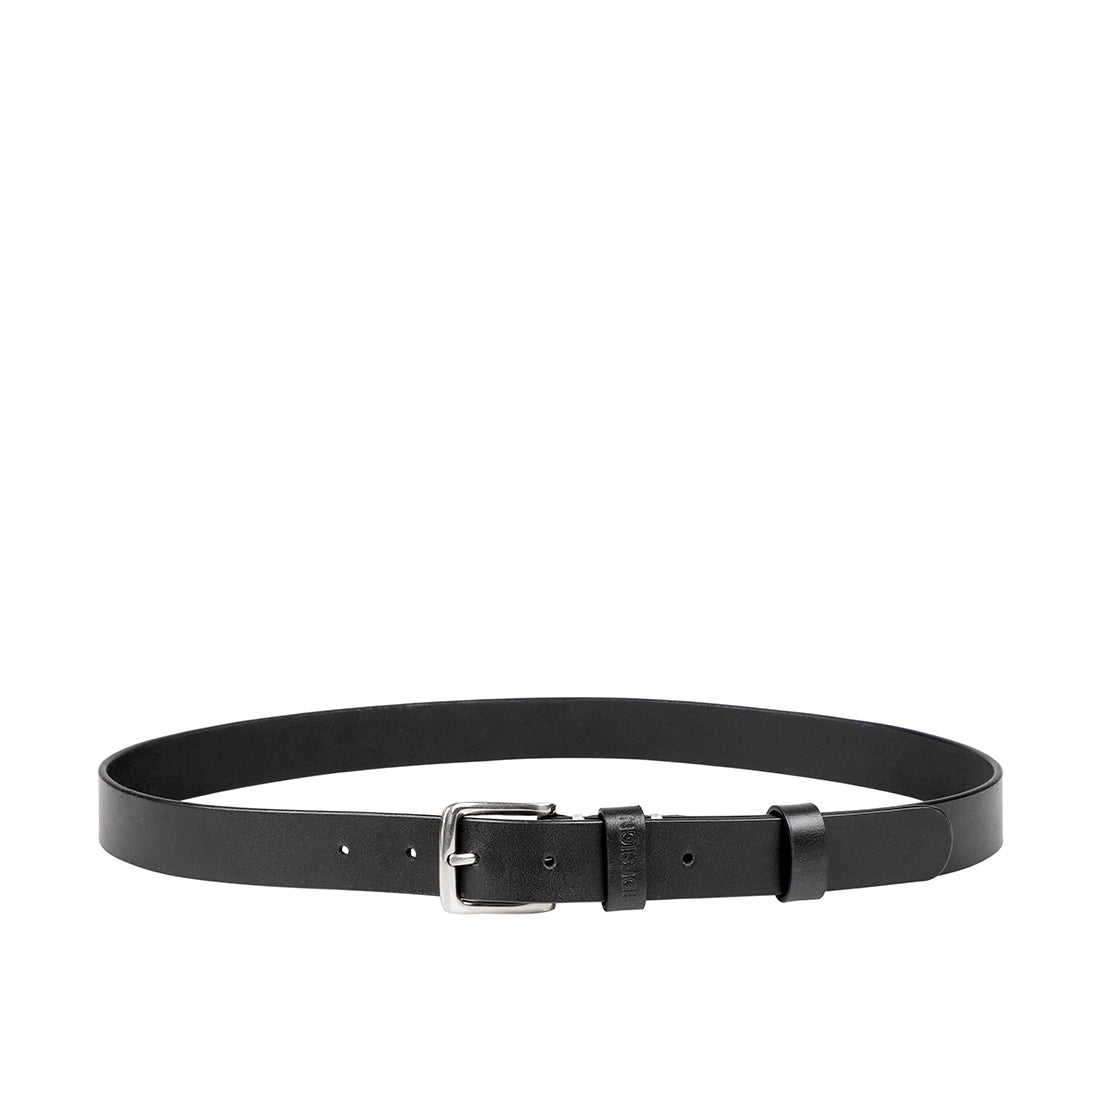 EE TRITON MENS NON-REVERSIBLE BELT